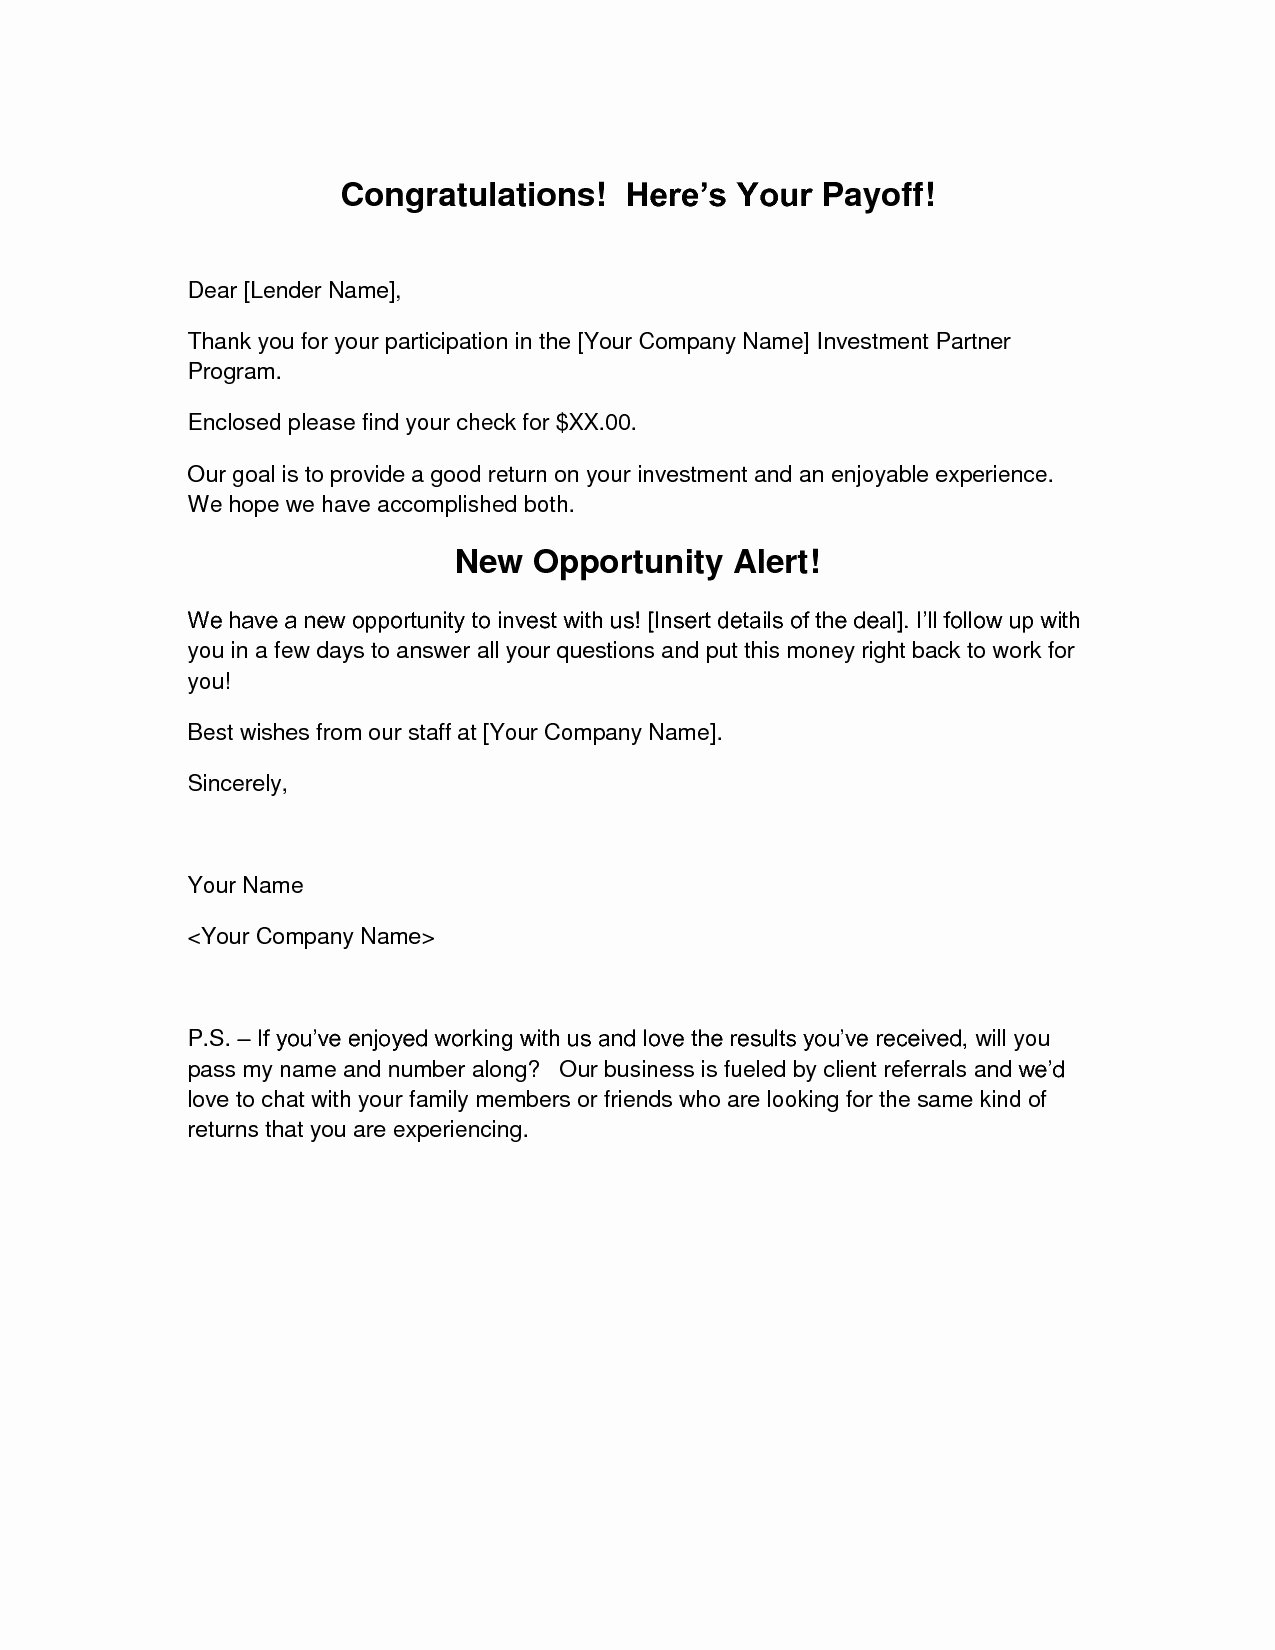 Private Mortgage Payoff Letter Template Beautiful Loan Payoff Letter Template Bluemooncatering